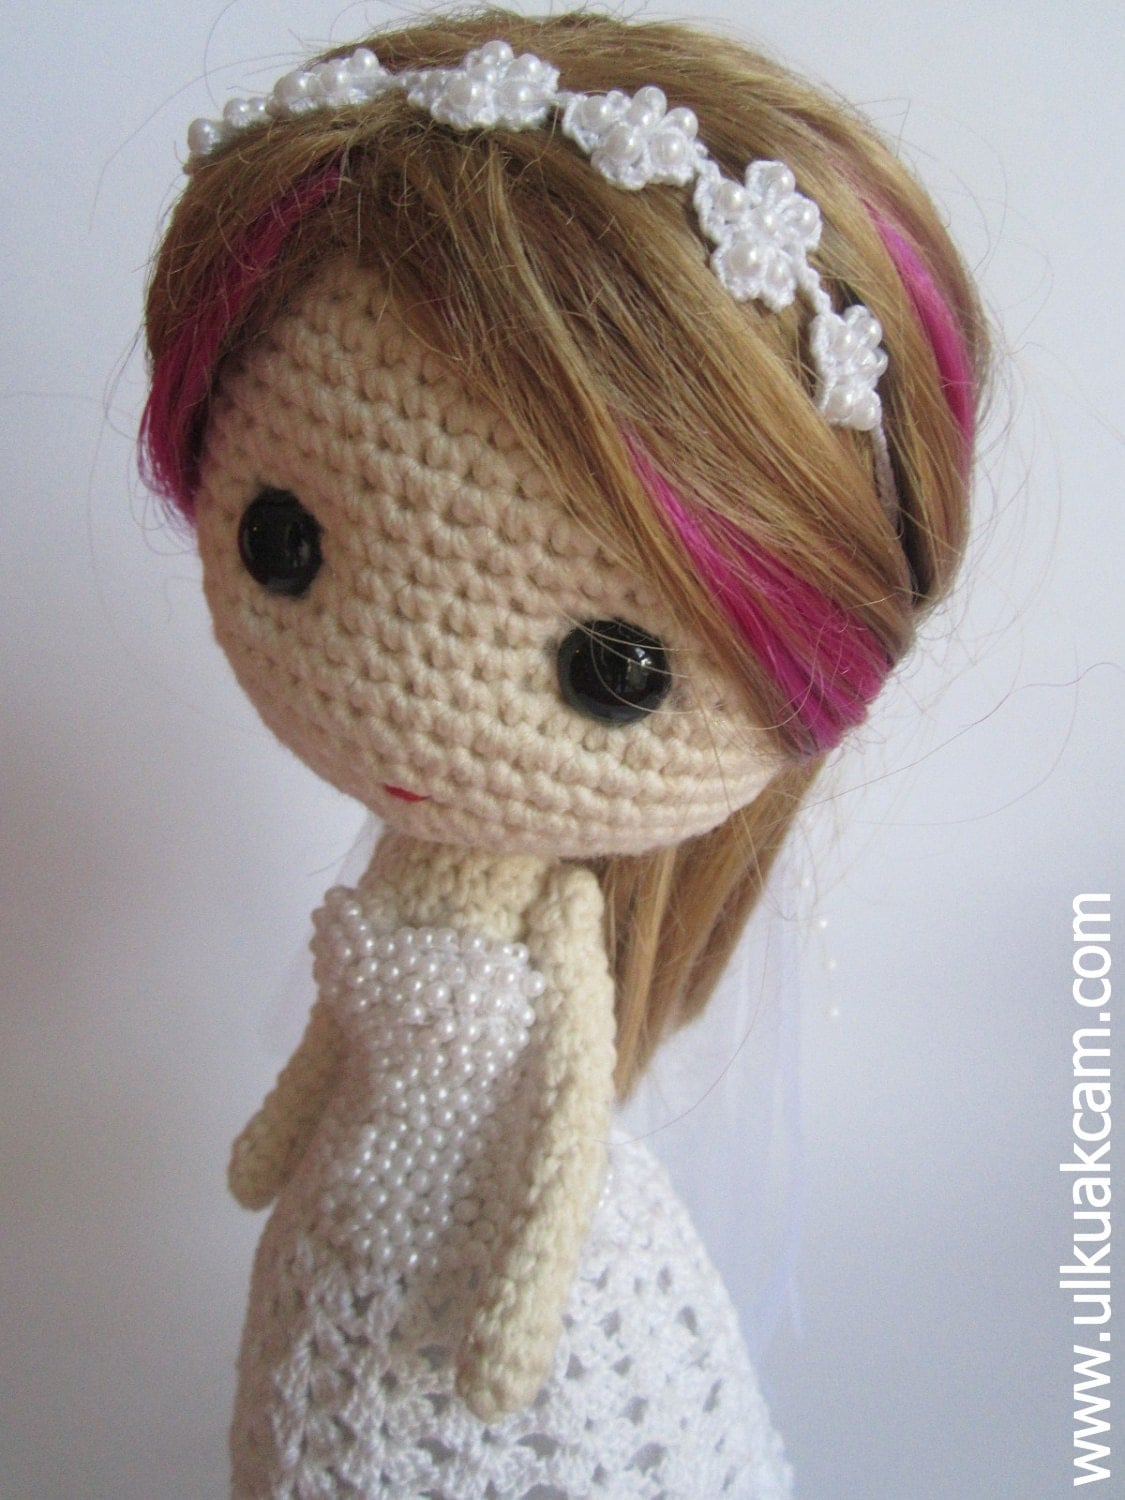 Basic Crochet Doll Pattern Free : PDF Crochet Wedding Gown Pattern for Deniz Doll Blythe Doll